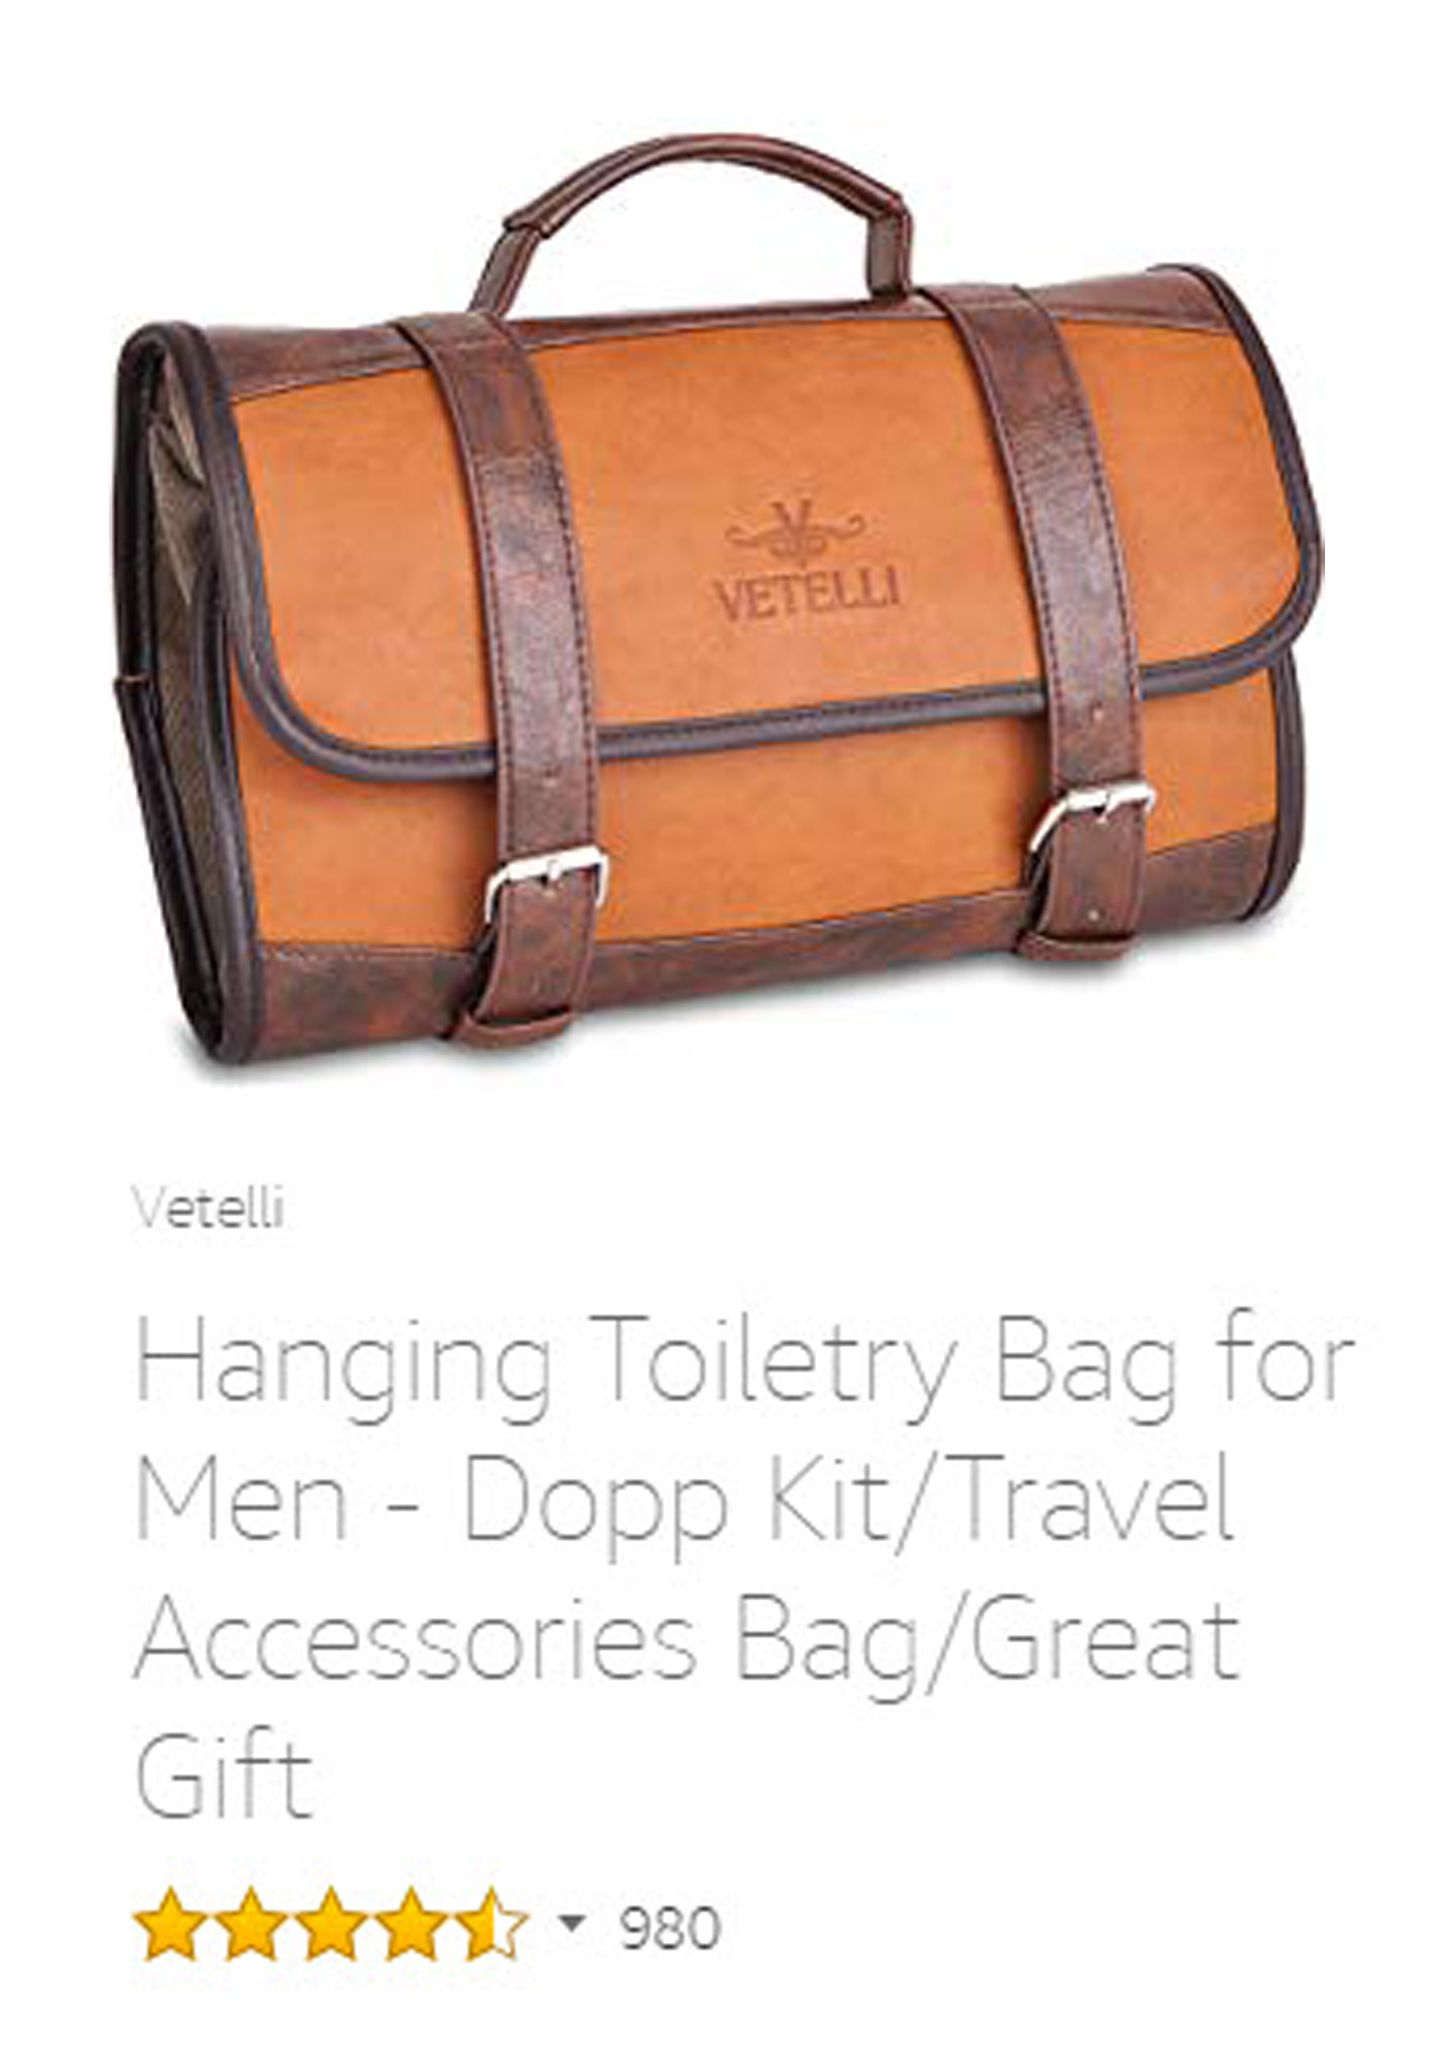 95489b465e Vetelli Hanging Toiletry Bag for Men - Dopp Kit Travel Accessories Bag Great  Gift.